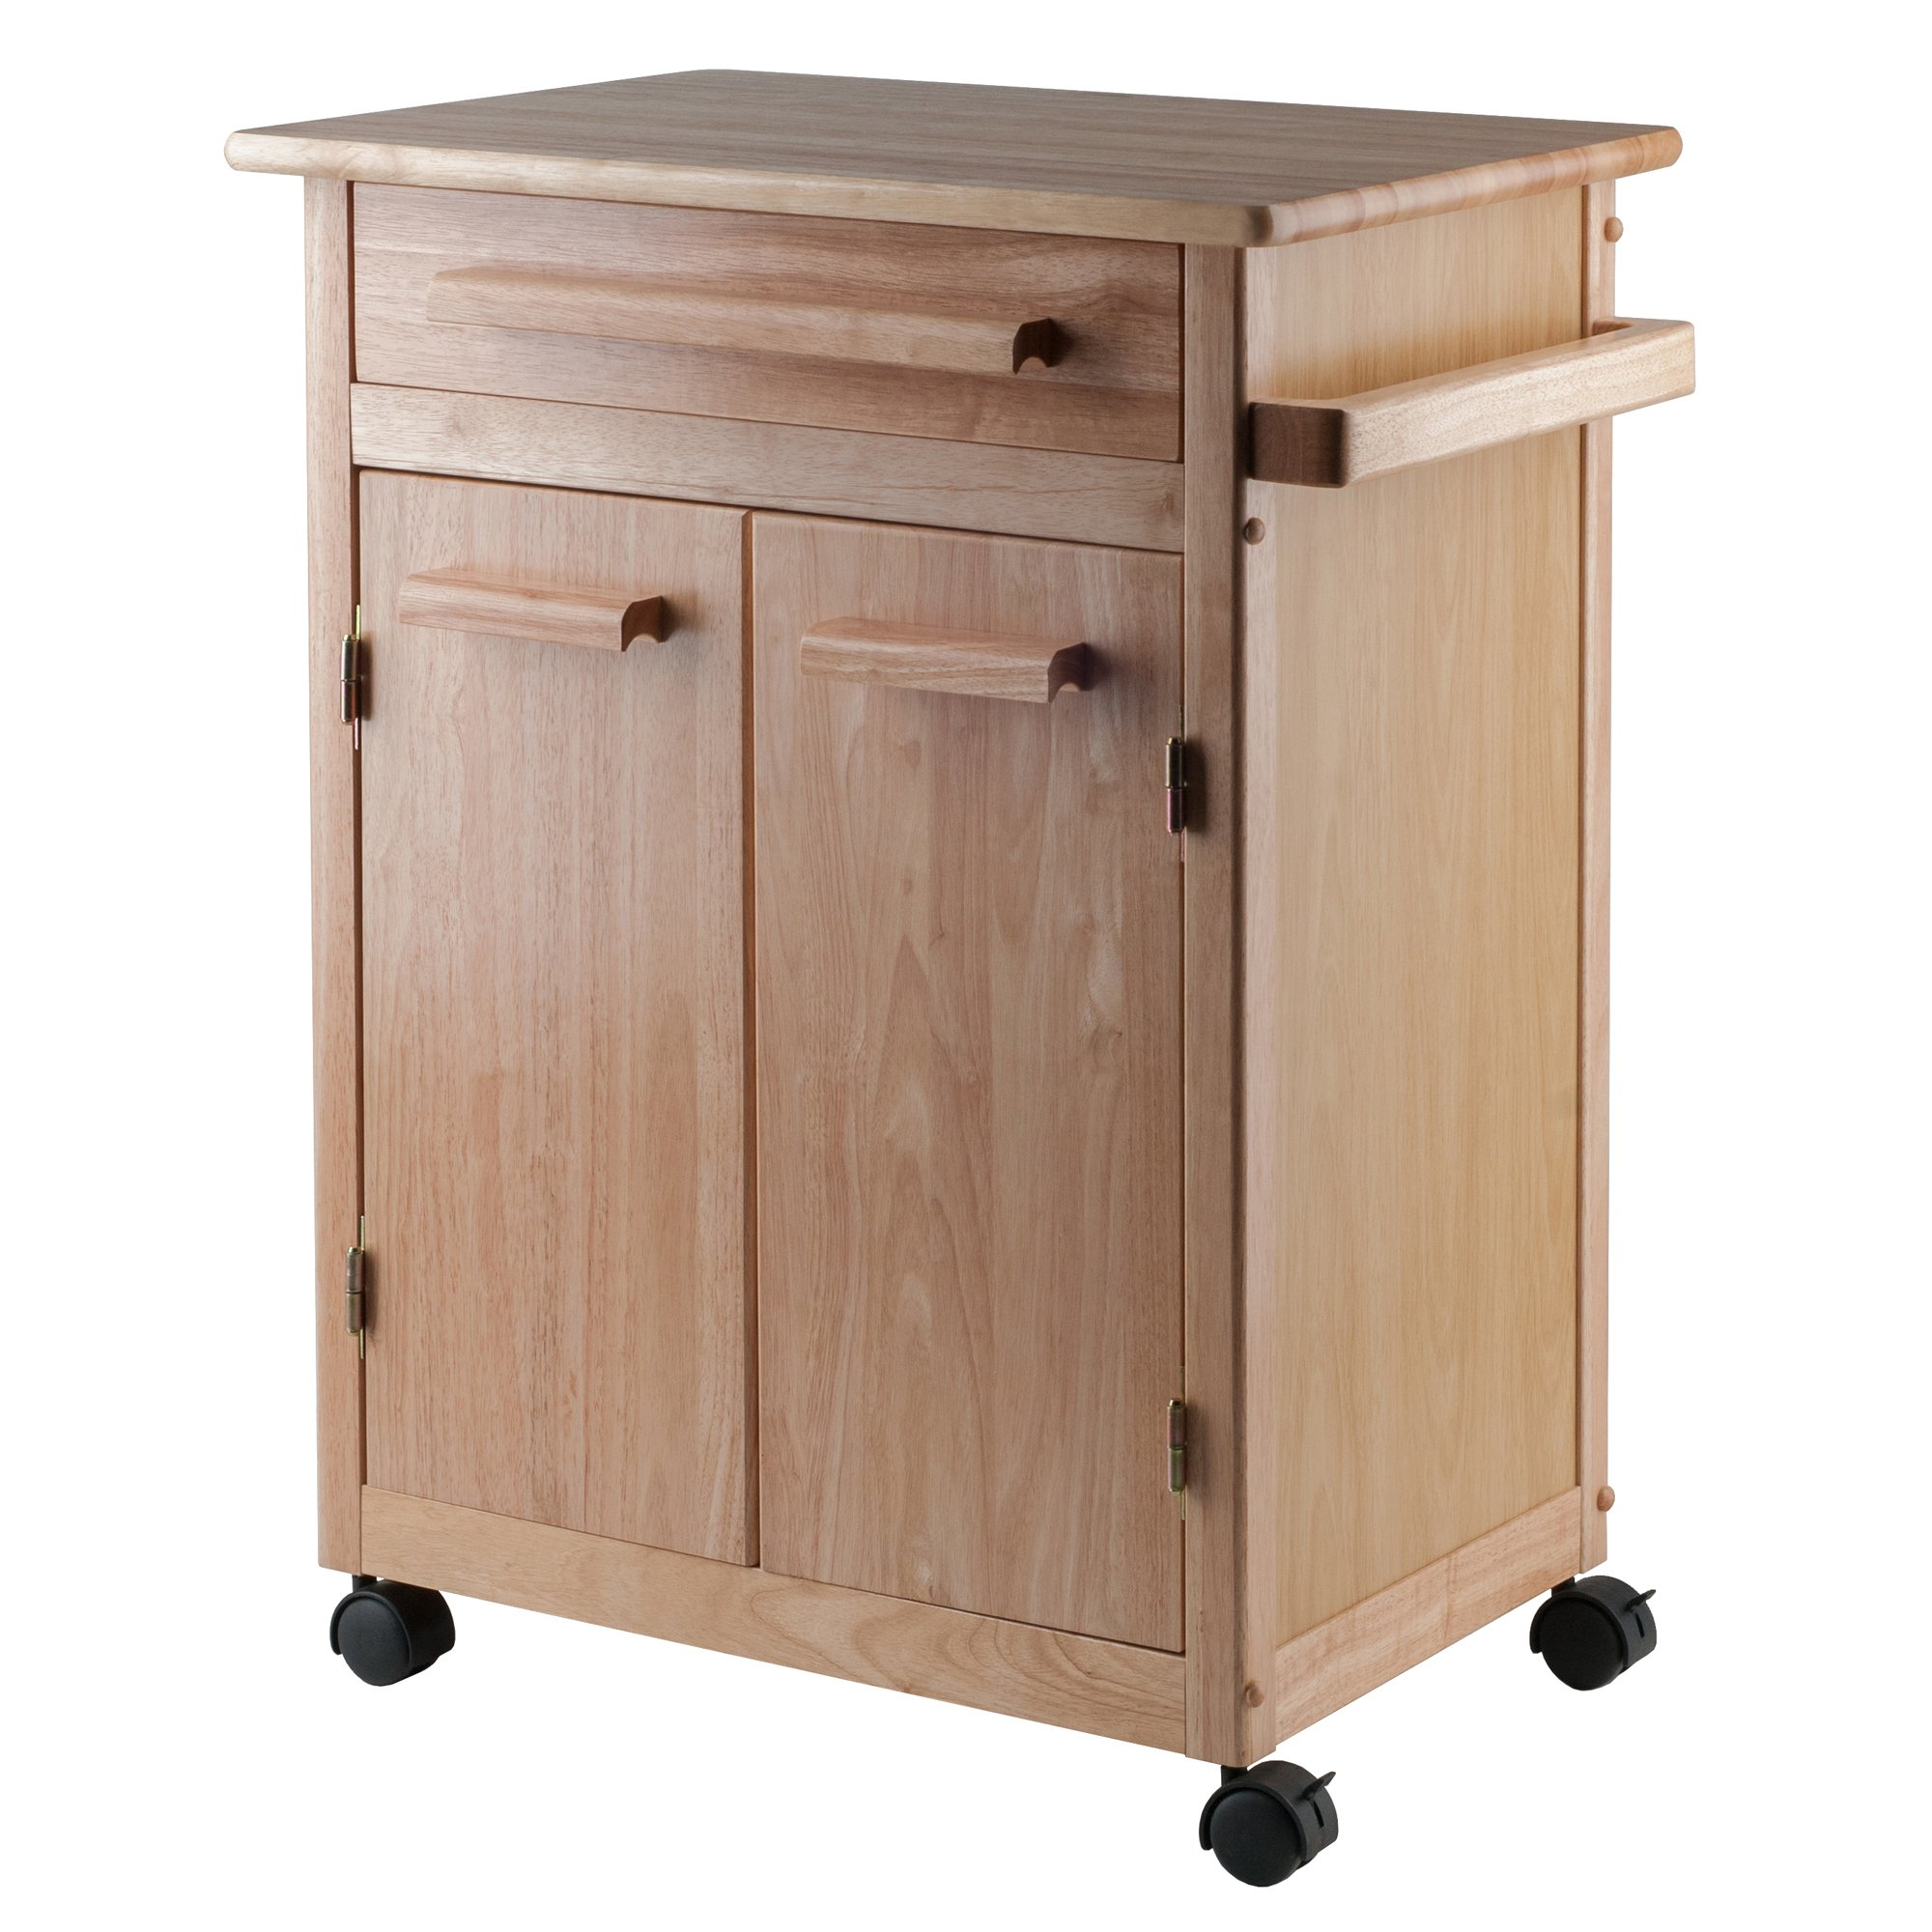 uk kitchen on wheels cabinets gift cabinet cart storage movable i carts white island best trolley ideas famous